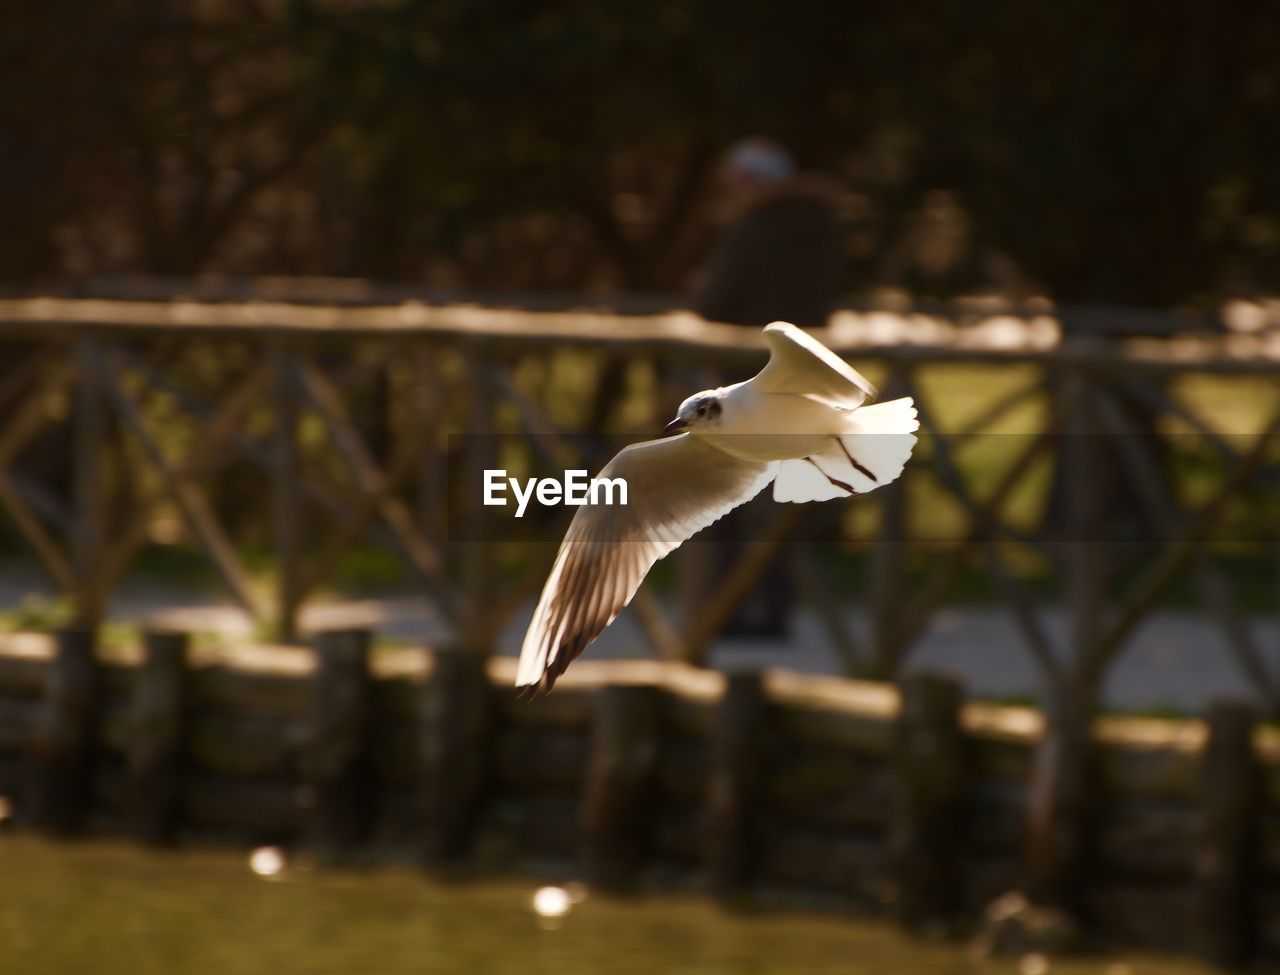 animal themes, bird, flying, one animal, animal, animal wildlife, spread wings, vertebrate, animals in the wild, mid-air, focus on foreground, no people, white color, day, nature, motion, egret, close-up, selective focus, outdoors, seagull